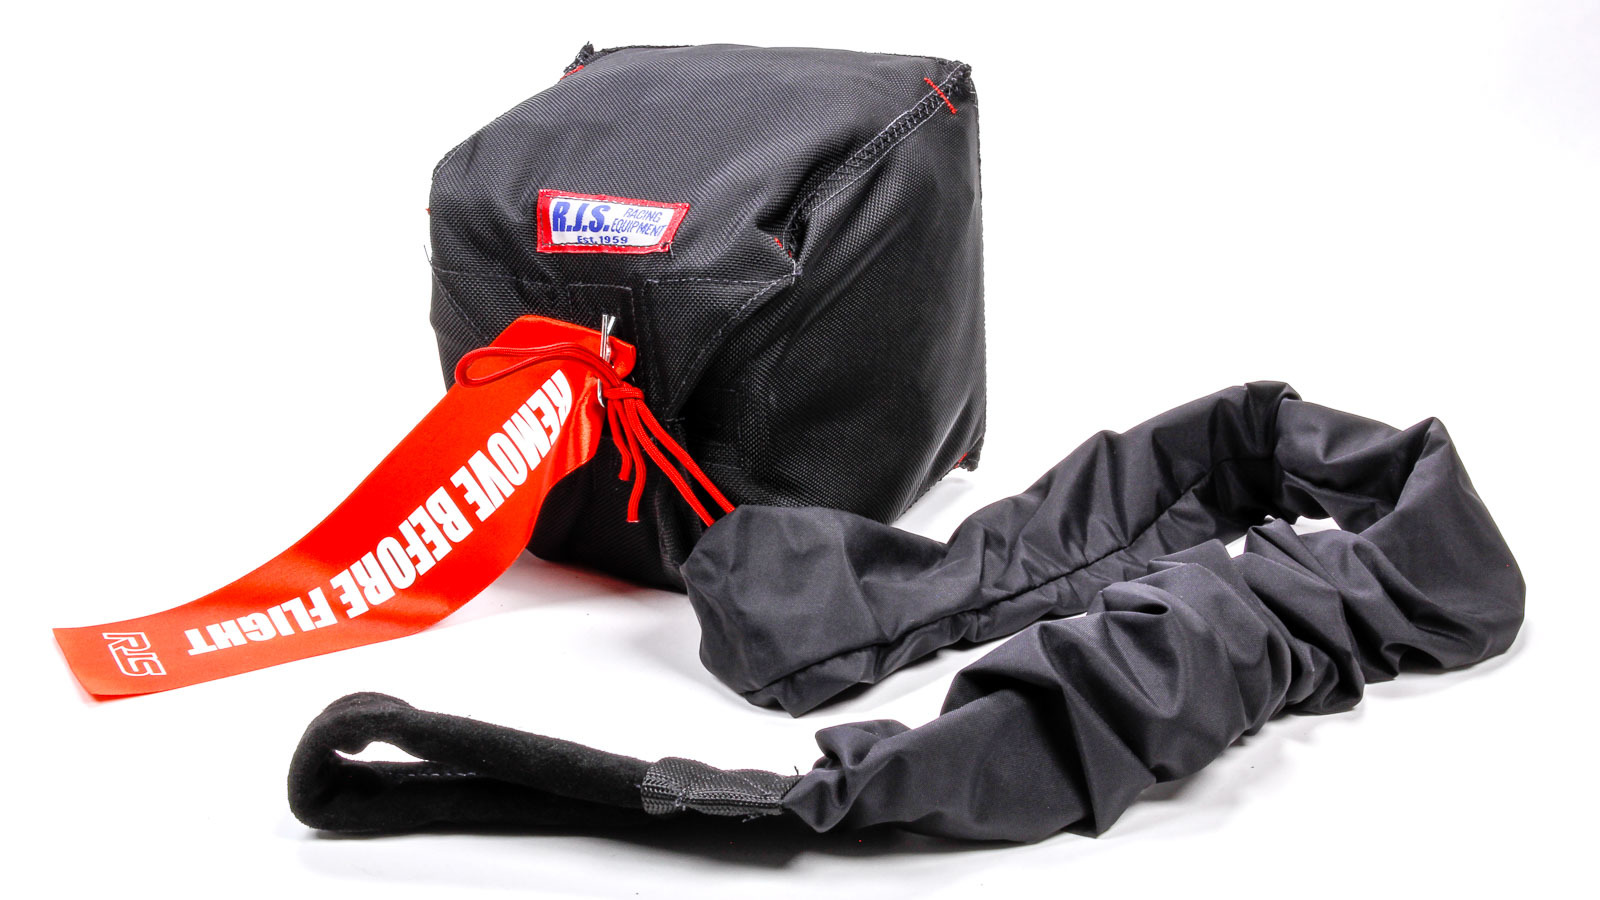 Rjs Safety Qualifier Chute W/ Nylon Bag and Pilot Red